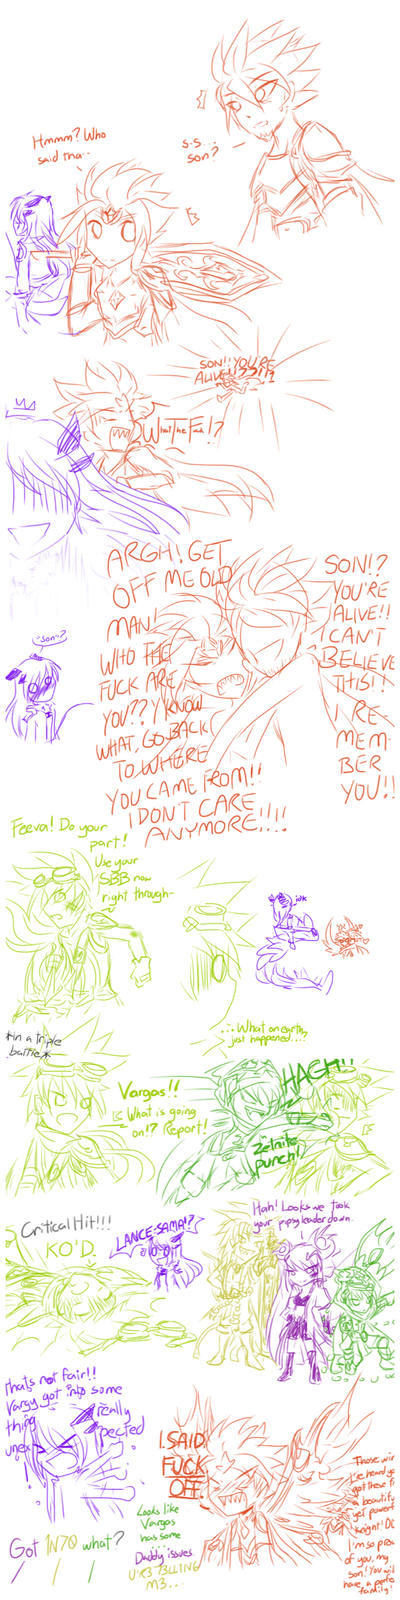 [Mini-Comix+BraveFrontier] HotHeaded Tsundere by SnivyBunneary190